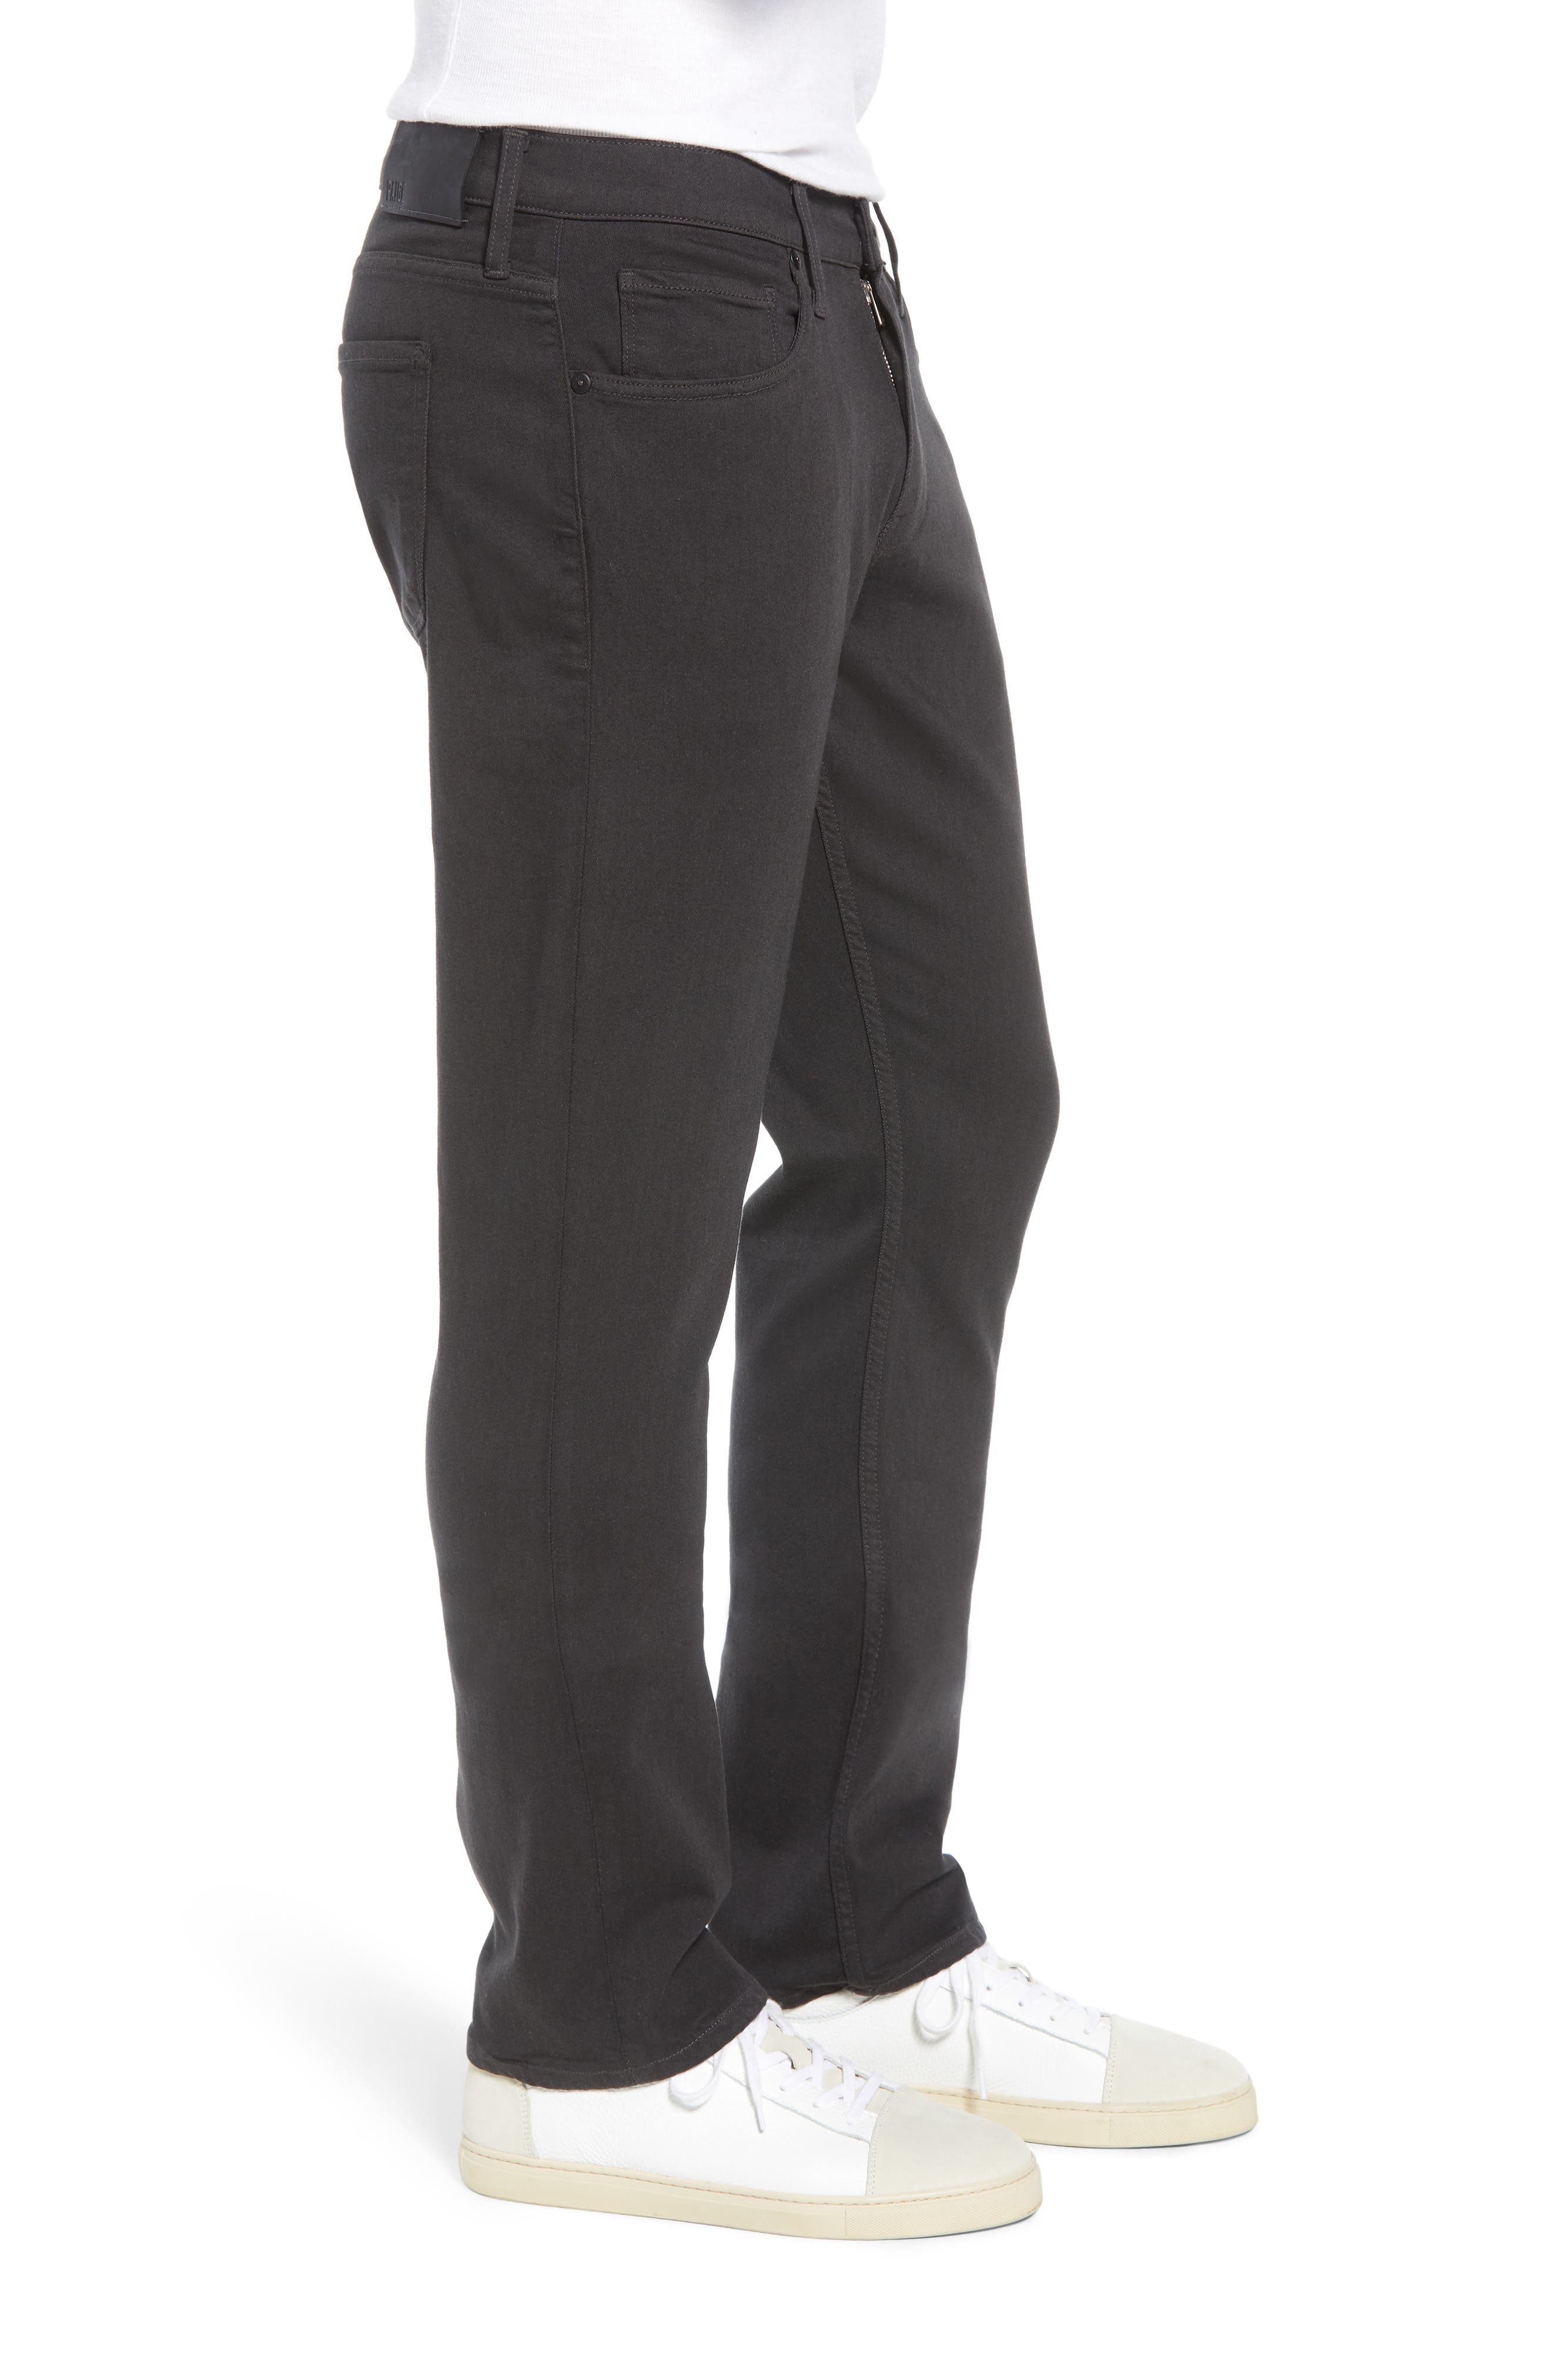 Transcend - Normandie Straight Leg Jeans,                             Alternate thumbnail 3, color,                             MIDNIGHT GREY